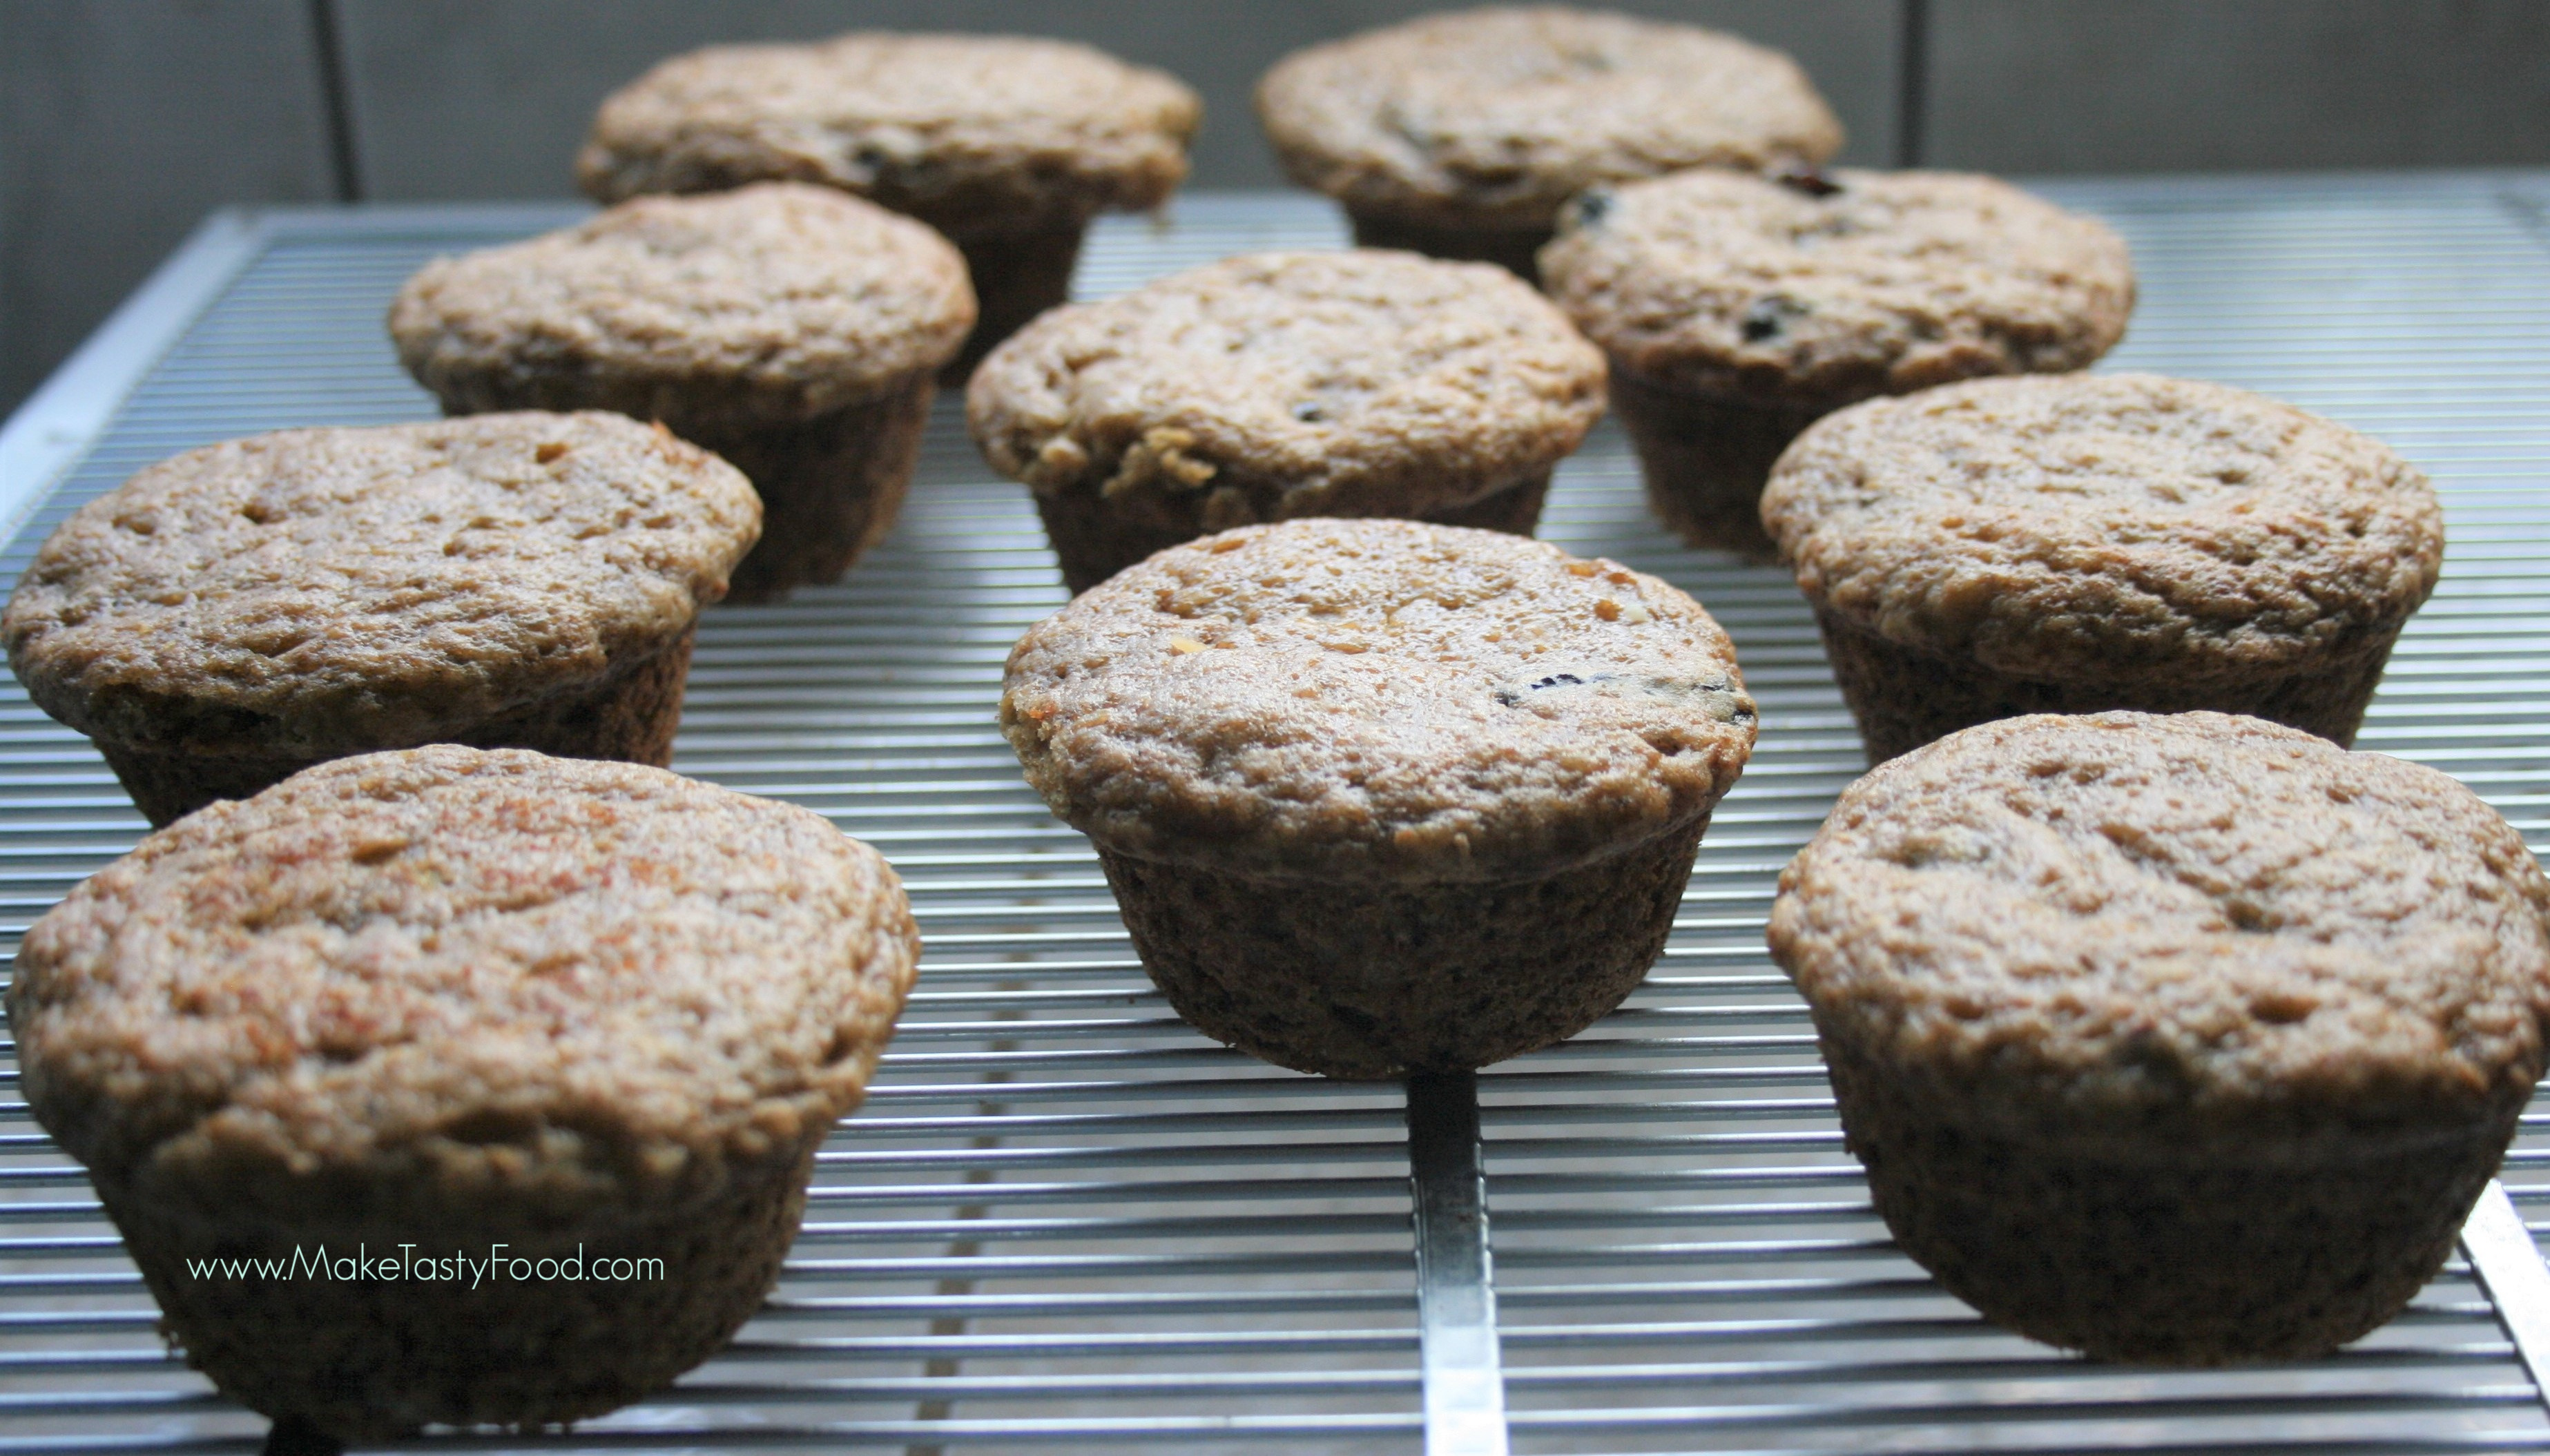 banana muffins cooling on a cooler rack